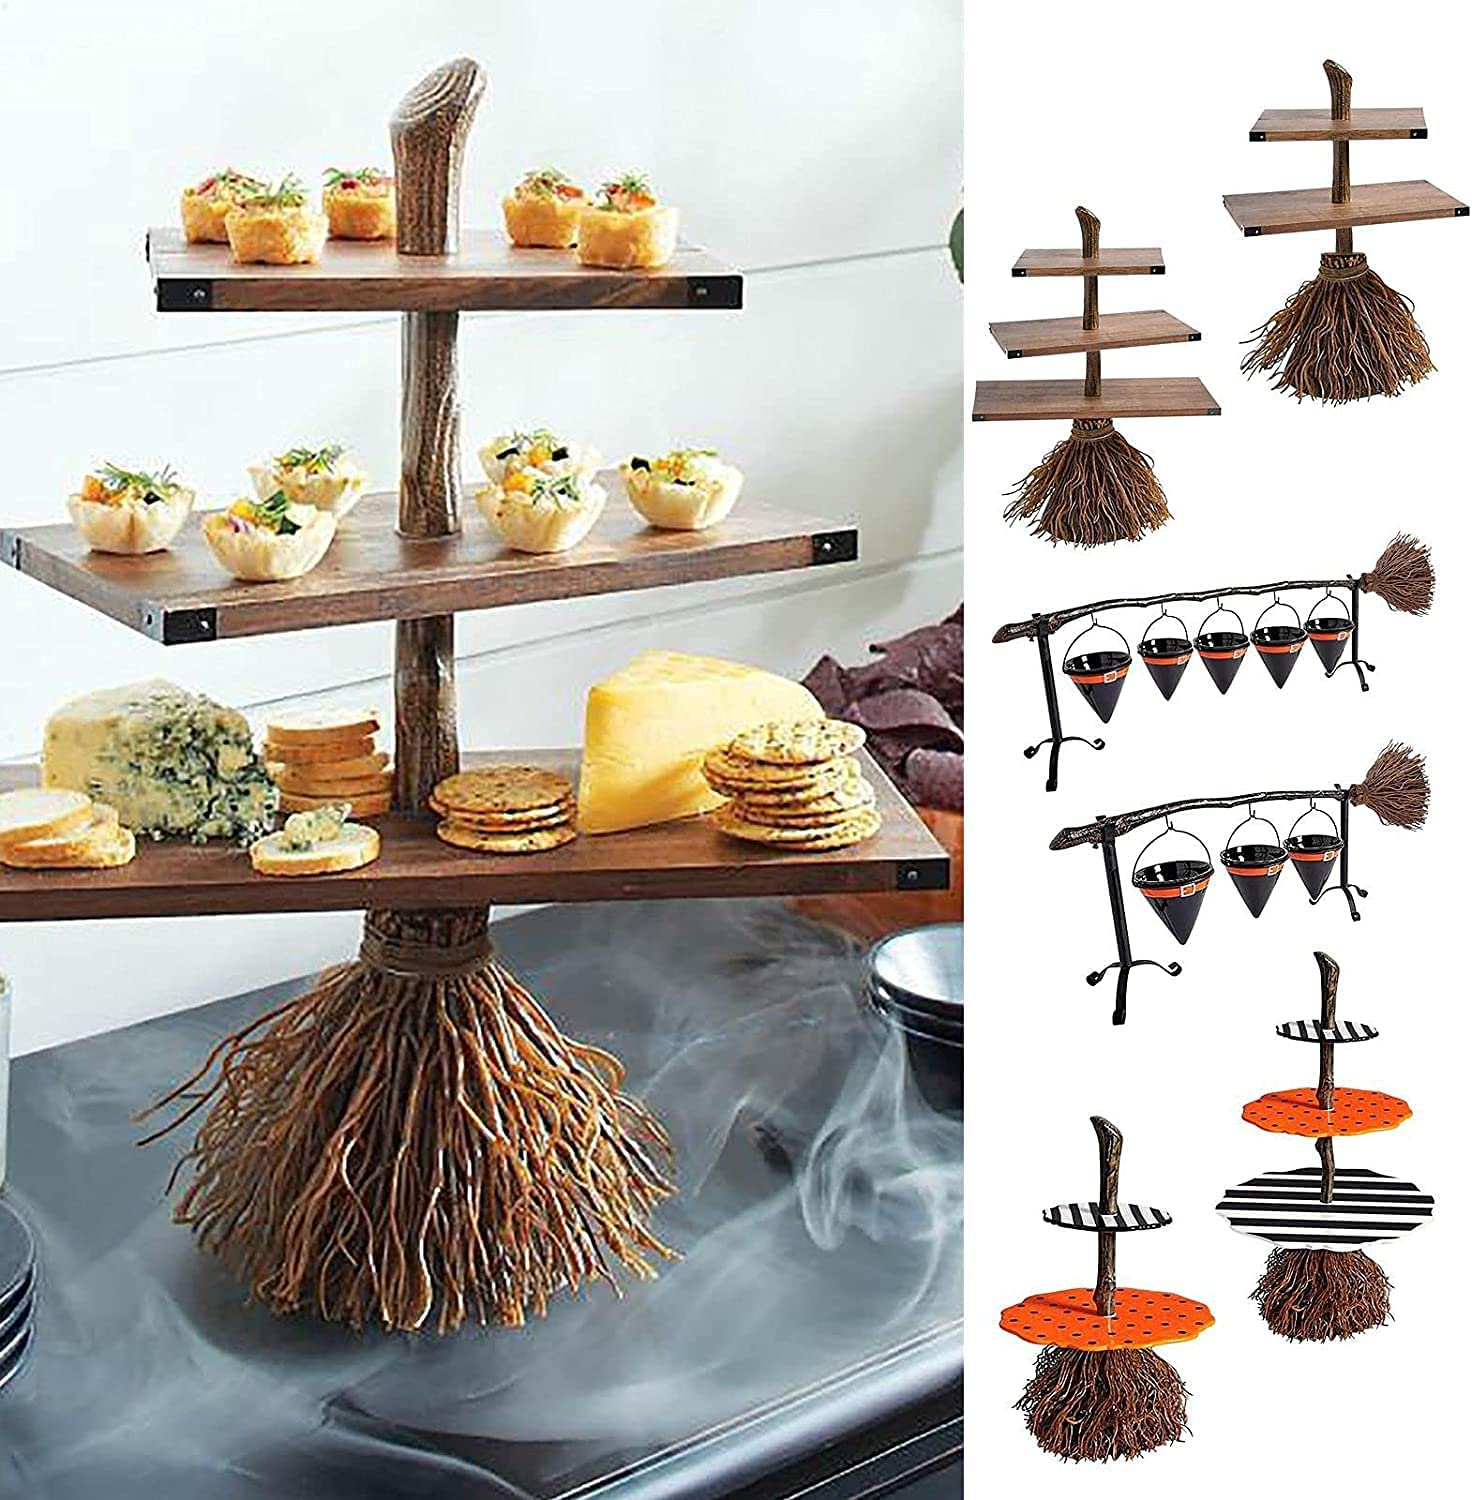 Halloween Witch Hat Snack Bowl Shelf, Broomstick Snack Bowl Stand with Removable Basket Organizer, Decoration Device for Halloween Family Party (D-3 tiers) : Home & Kitchen